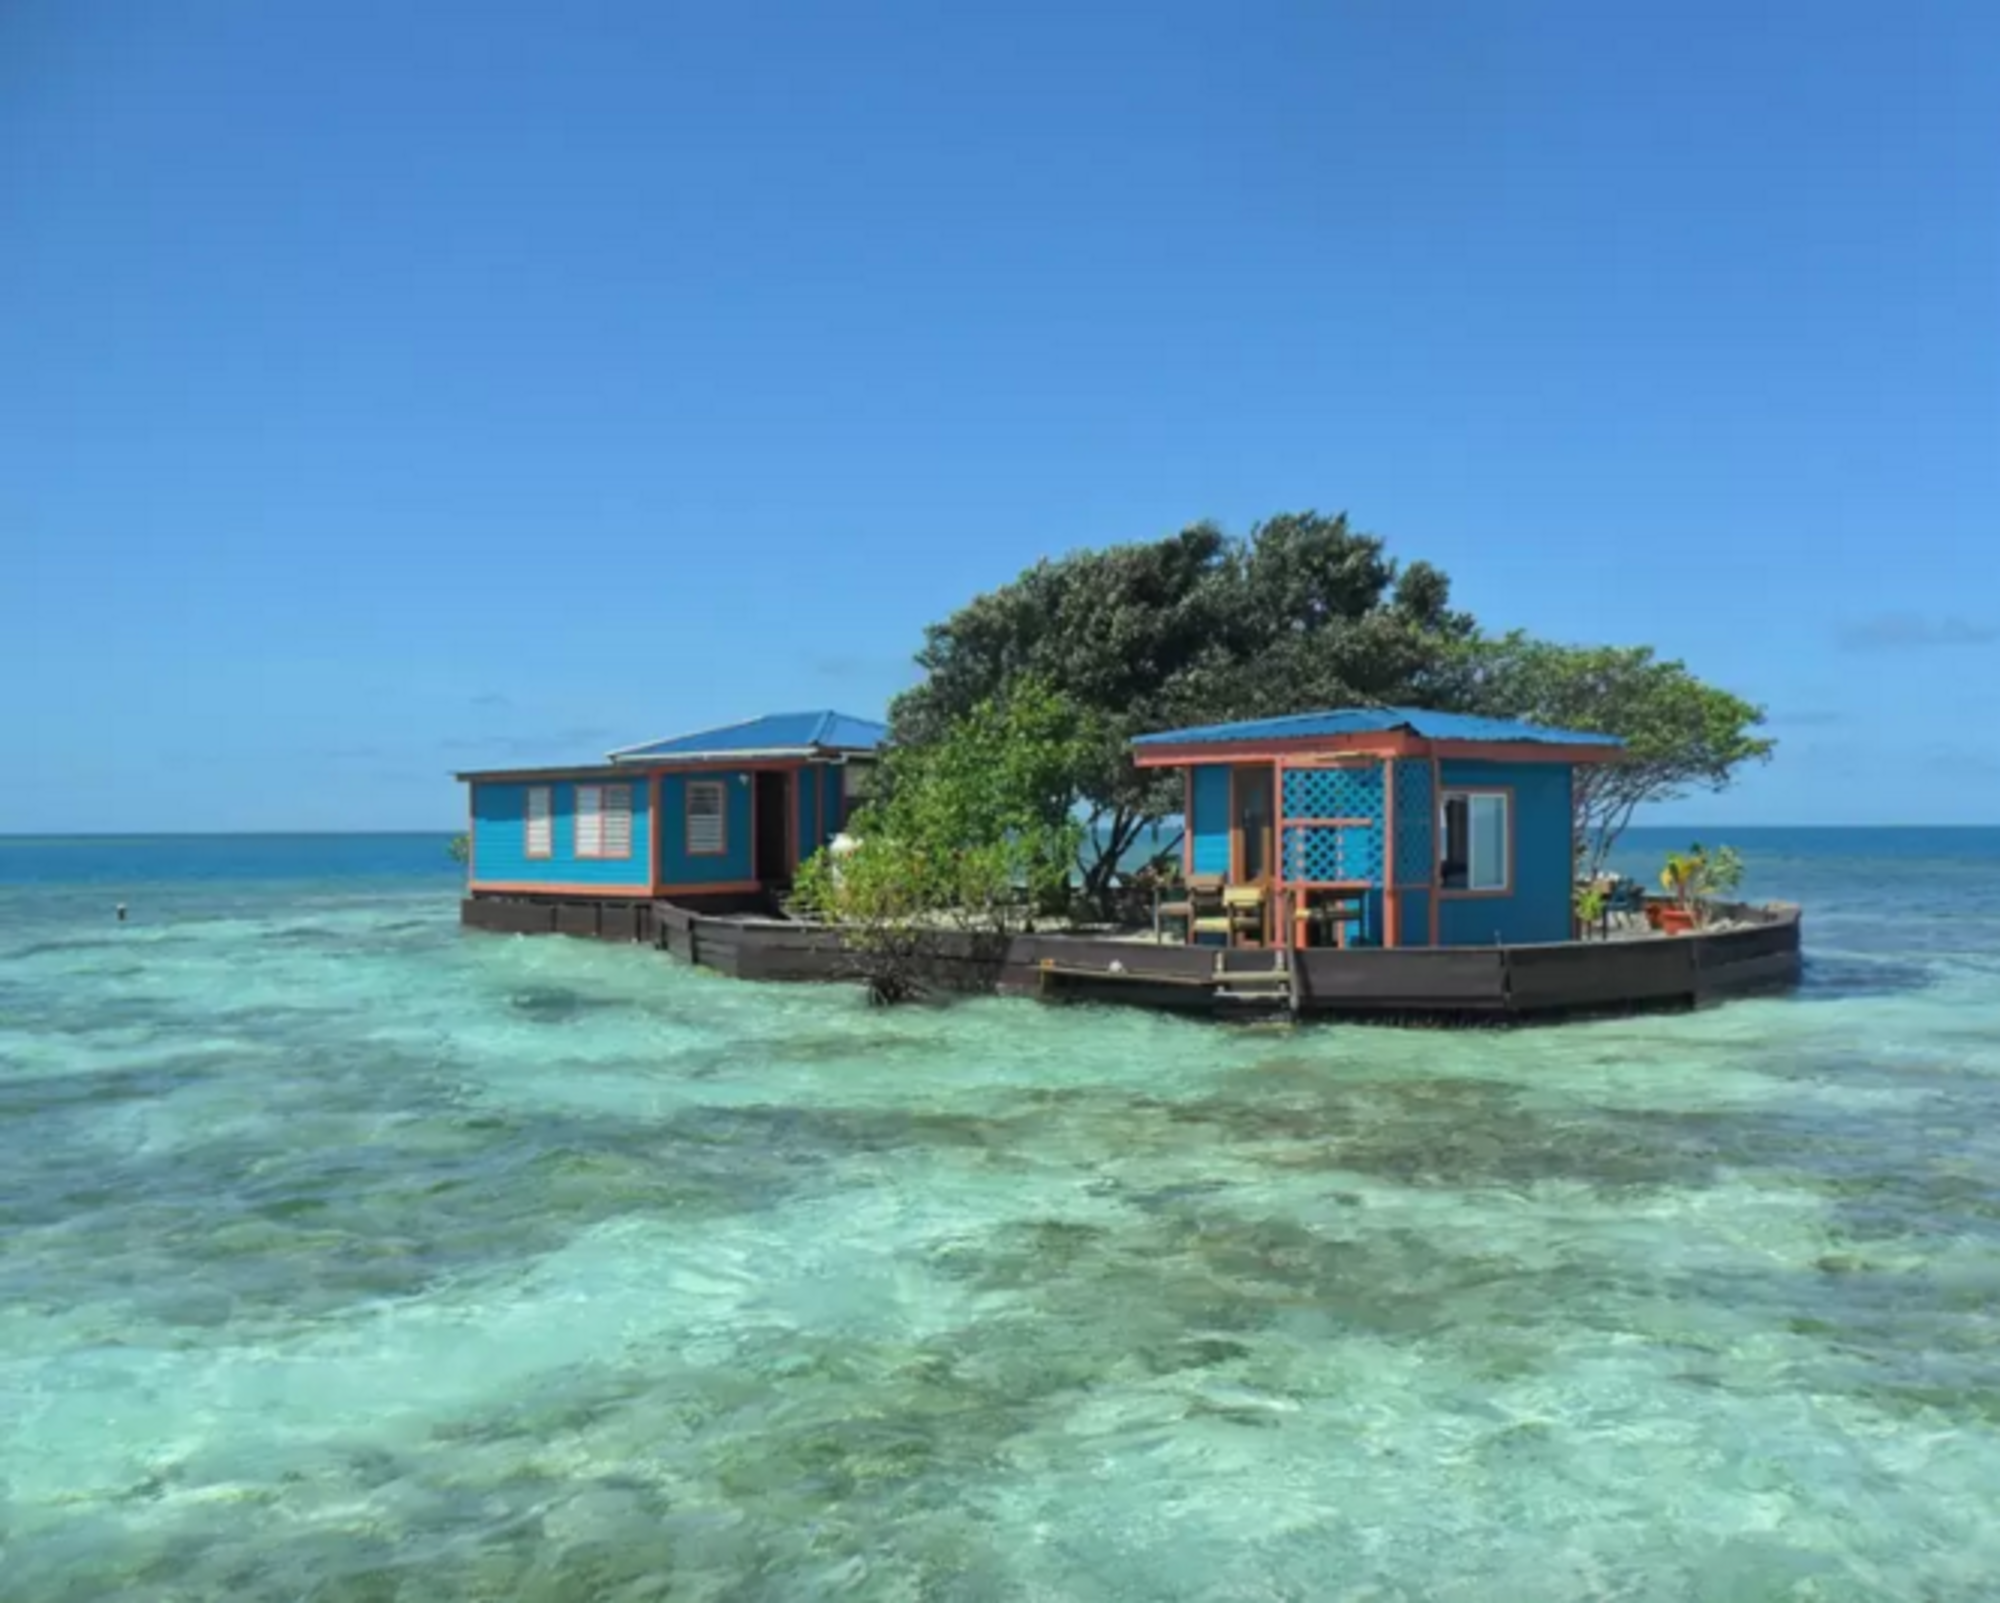 http://www.islands.com/private-islands-you-can-rent-on-airbnb-right-now?HgzRZgLd7Z0gJBhS.01